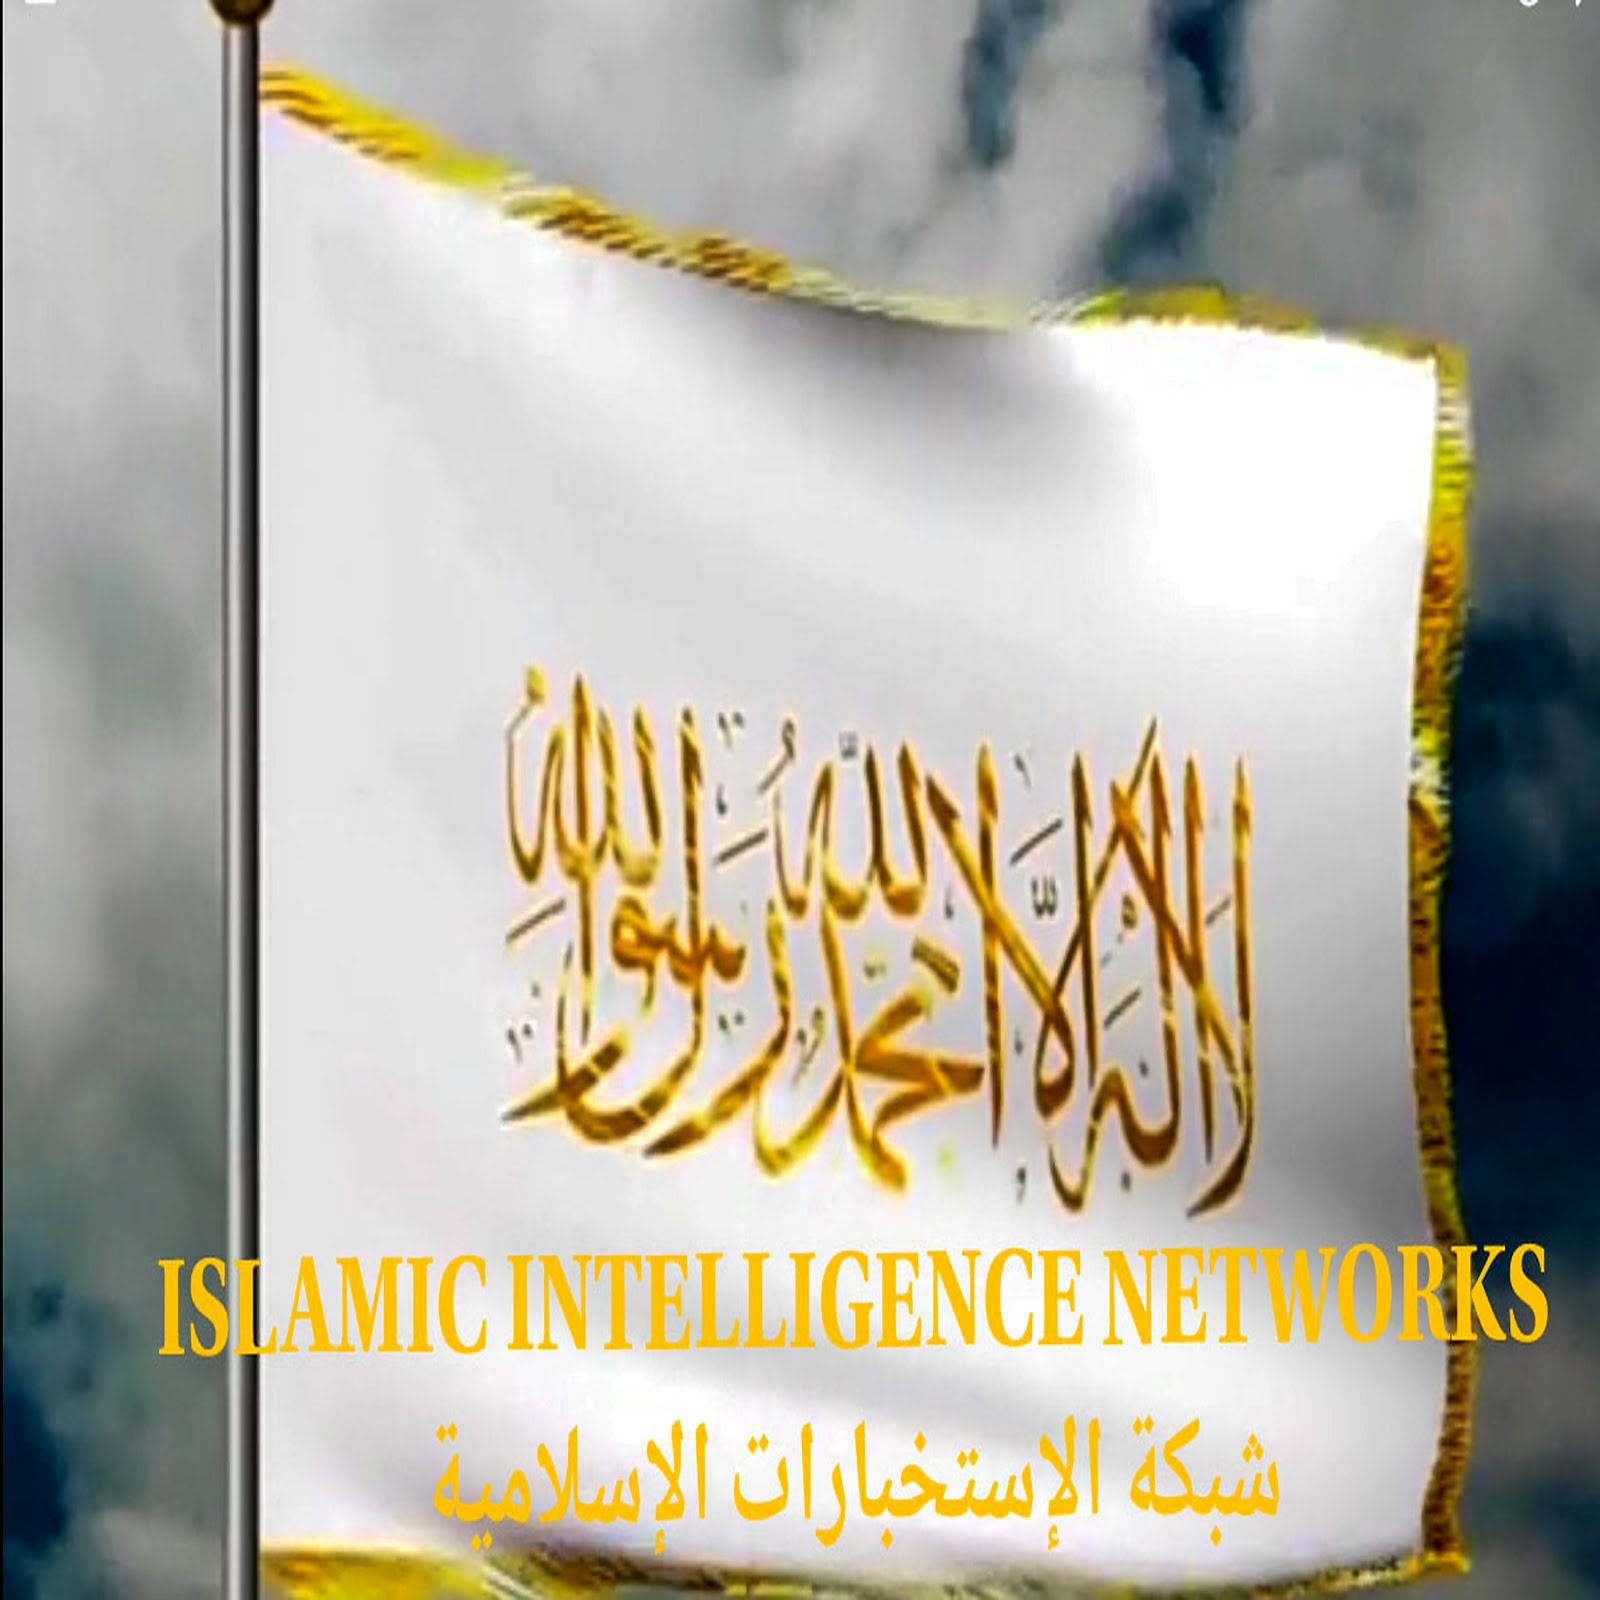 ISLAMIC-INTELLIGENCE